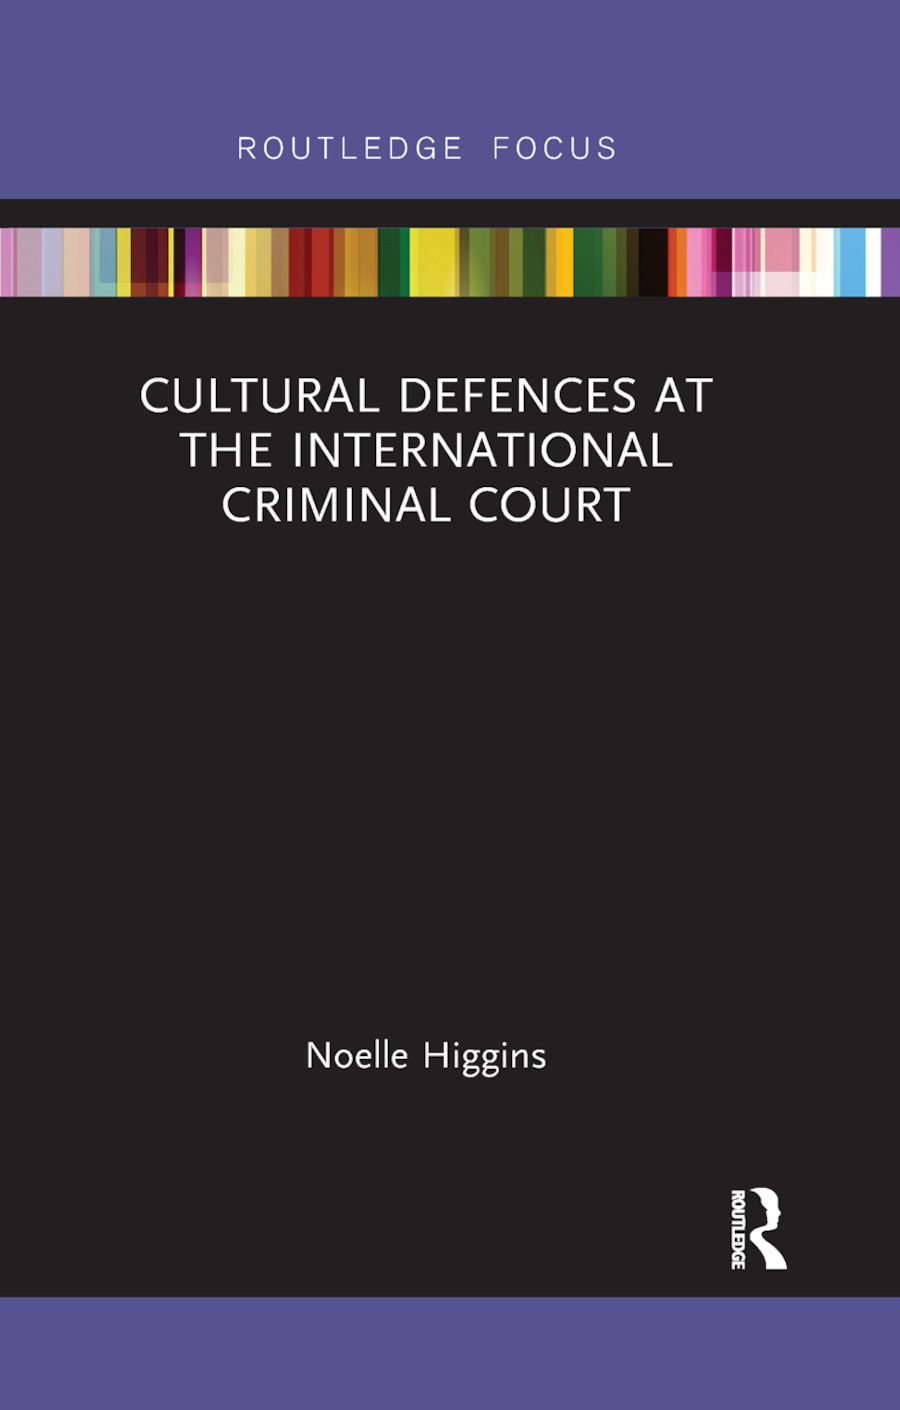 Cultural Defences at the International Criminal Court book cover